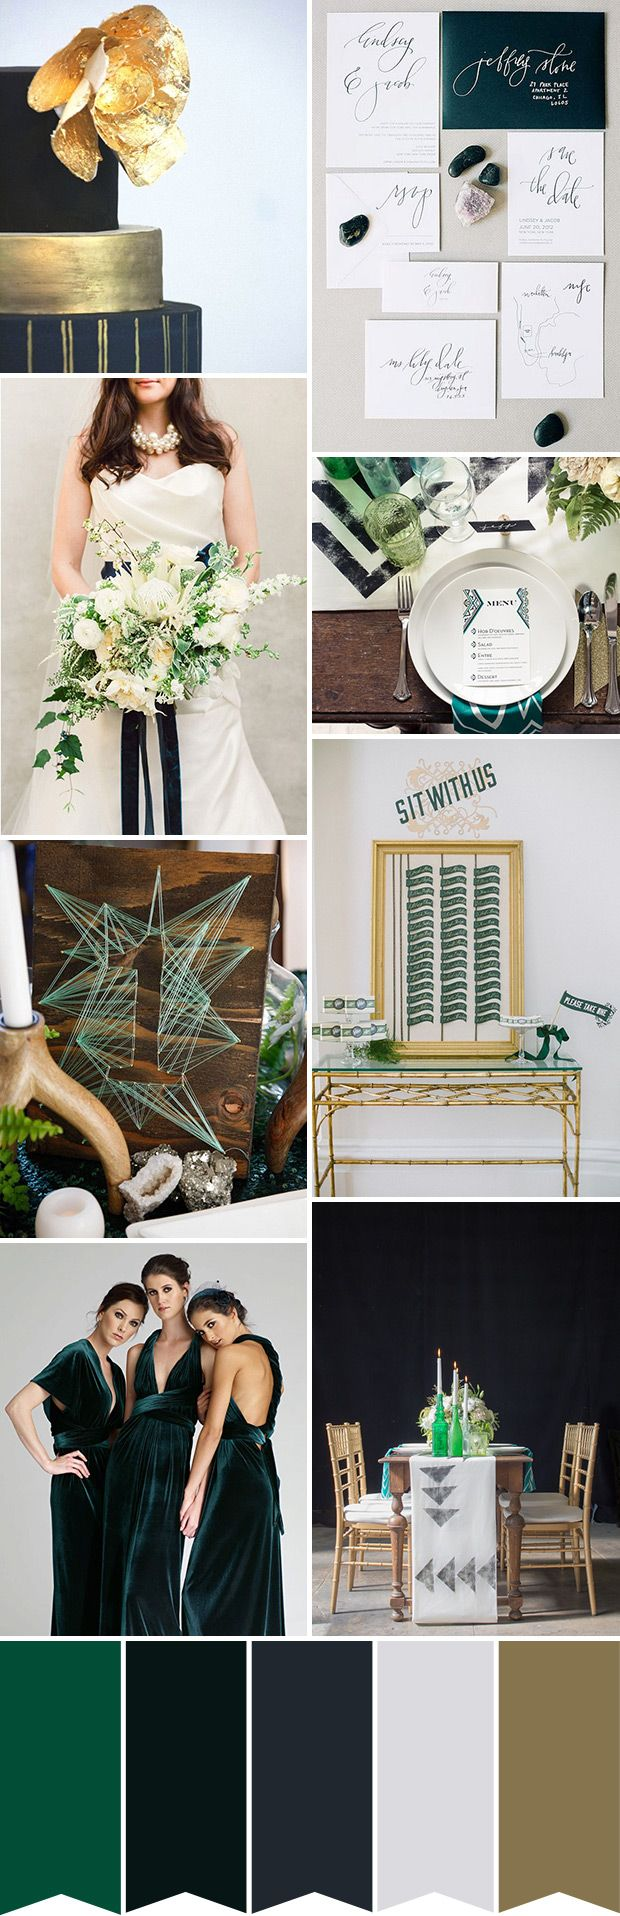 A Modern Emerald And Navy Color Palette With An Art Deco Edge Www Onefabday Com Modern Art Deco Wedding Art Deco Wedding Reception Art Deco Wedding